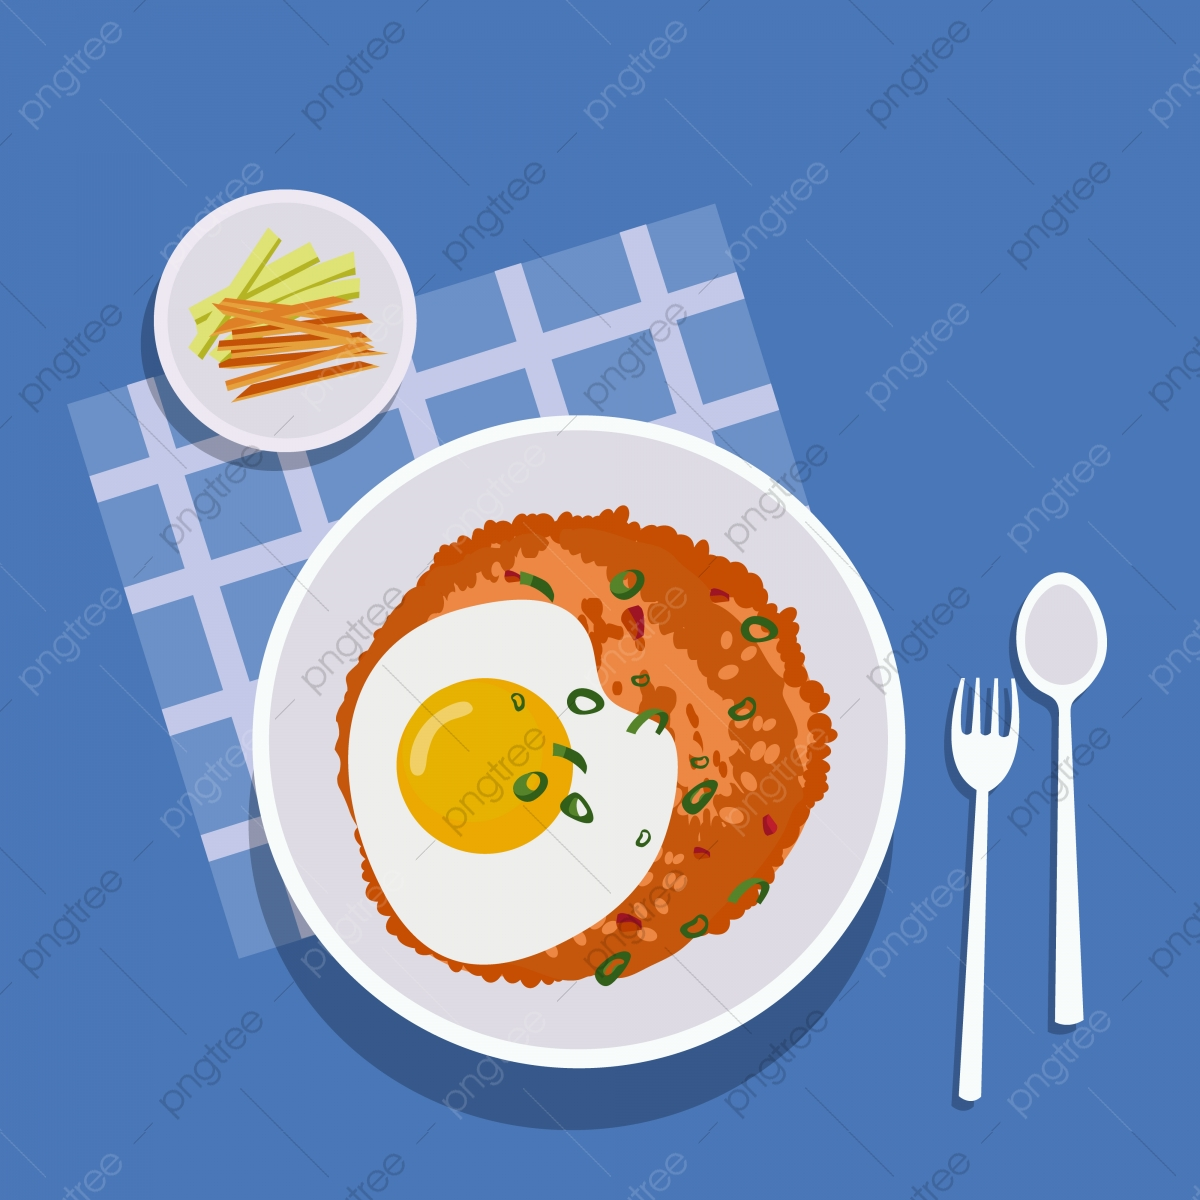 nasi kerabu png vector psd and clipart with transparent background for free download pngtree https pngtree com freepng nasi goreng indonesian food illustration 5495760 html